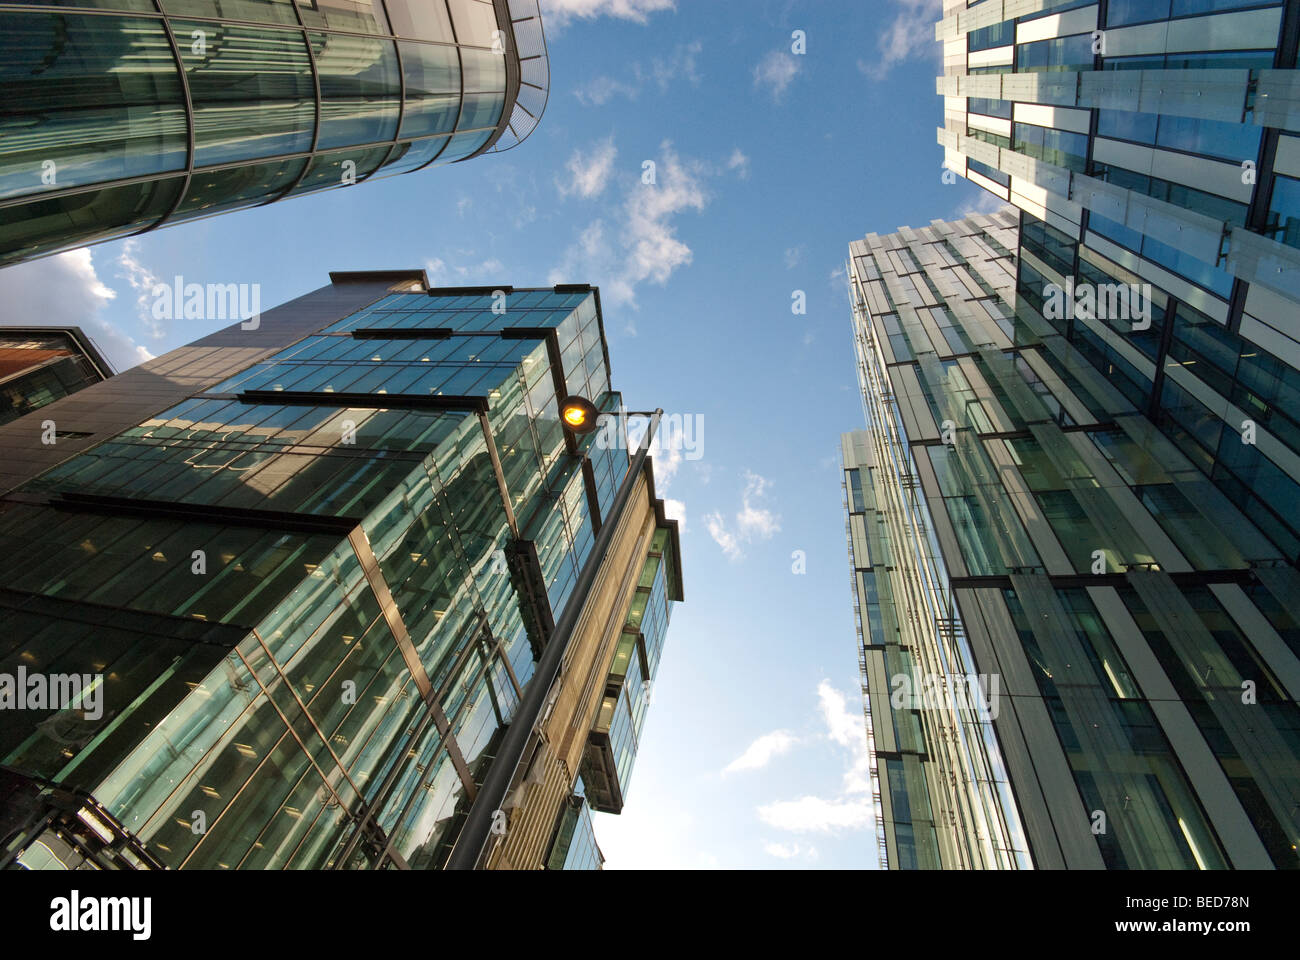 Manchester, UK: The finance district in the centre of the city. - Stock Image